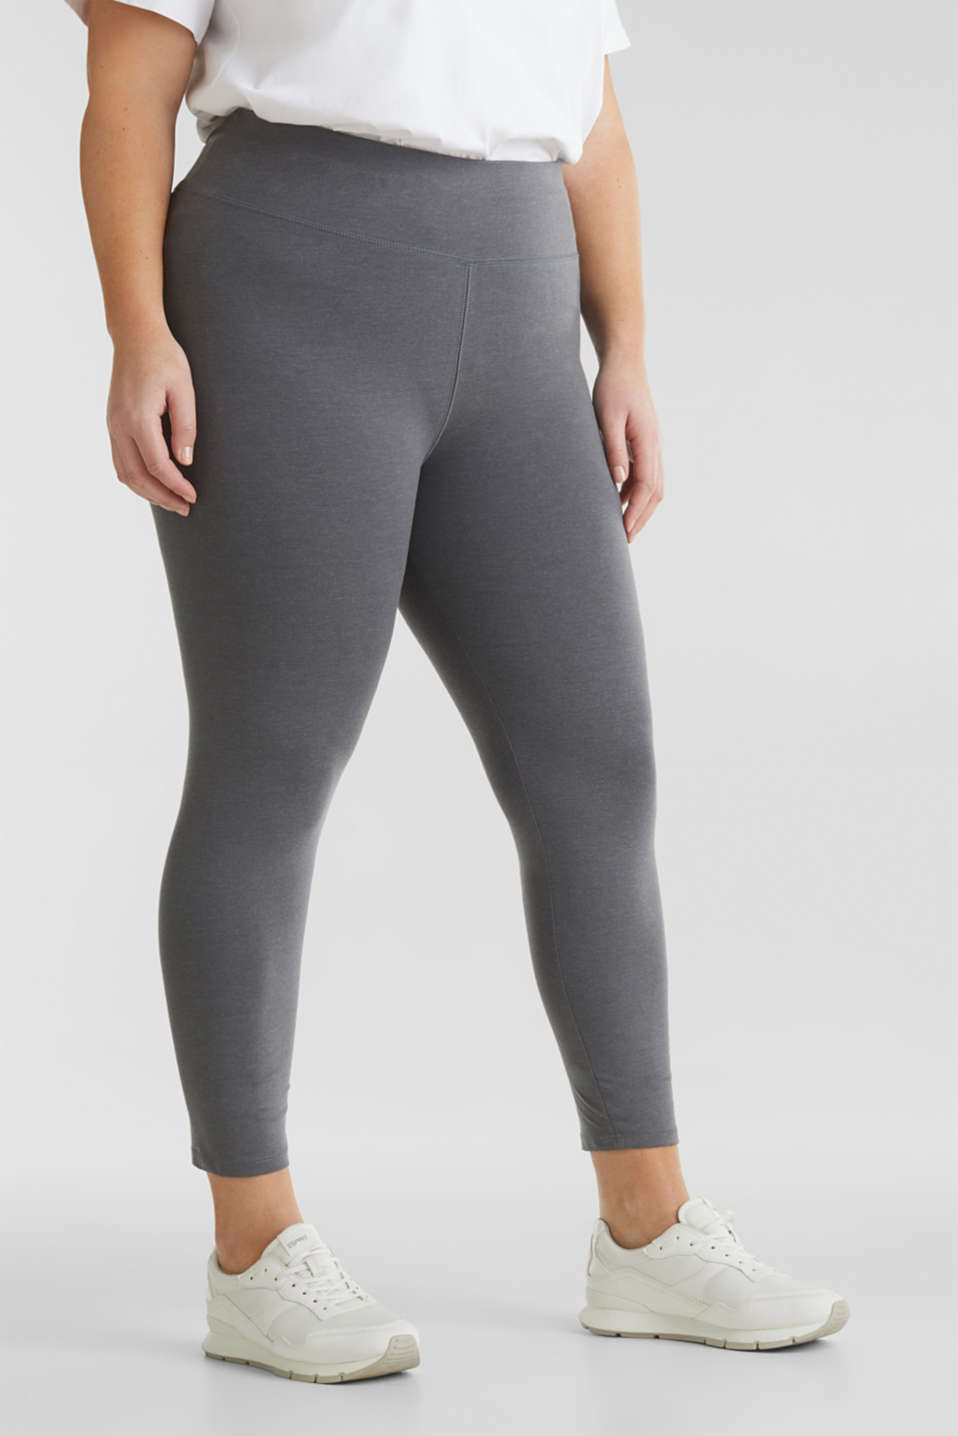 Esprit - CURVY leggings with shiny statements